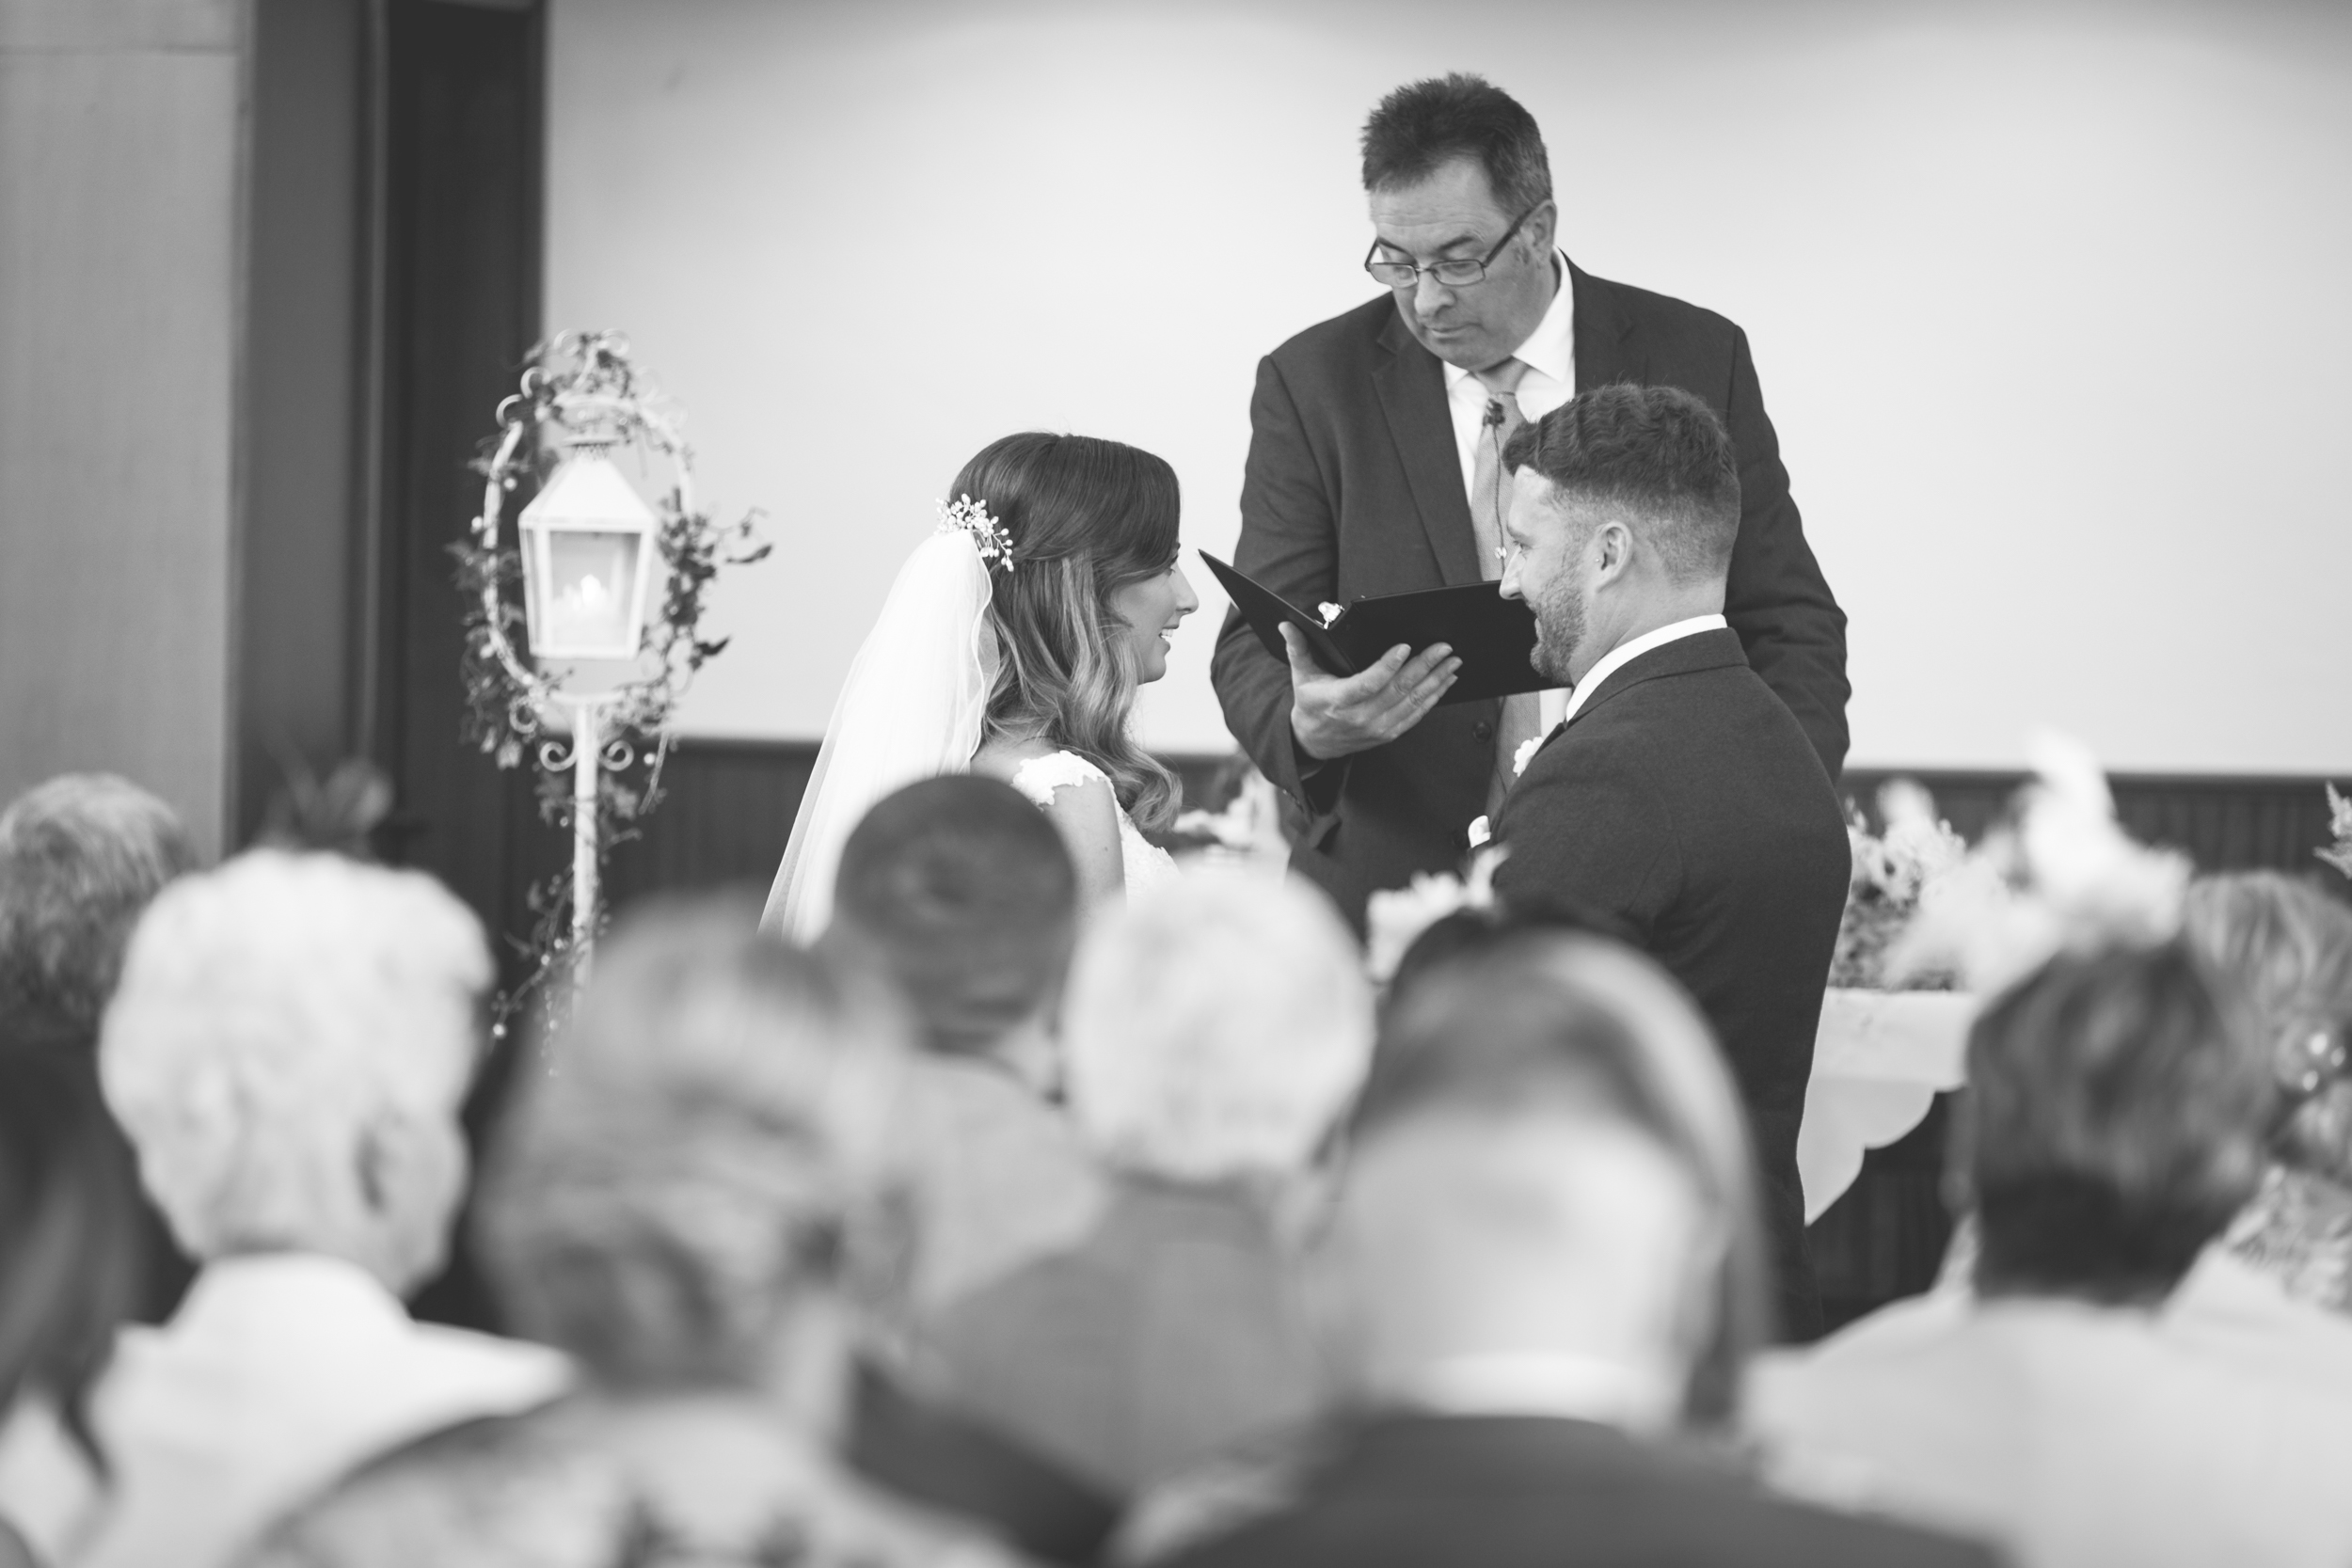 Brian McEwan | Northern Ireland Wedding Photographer | Rebecca & Michael | Ceremony-66.jpg